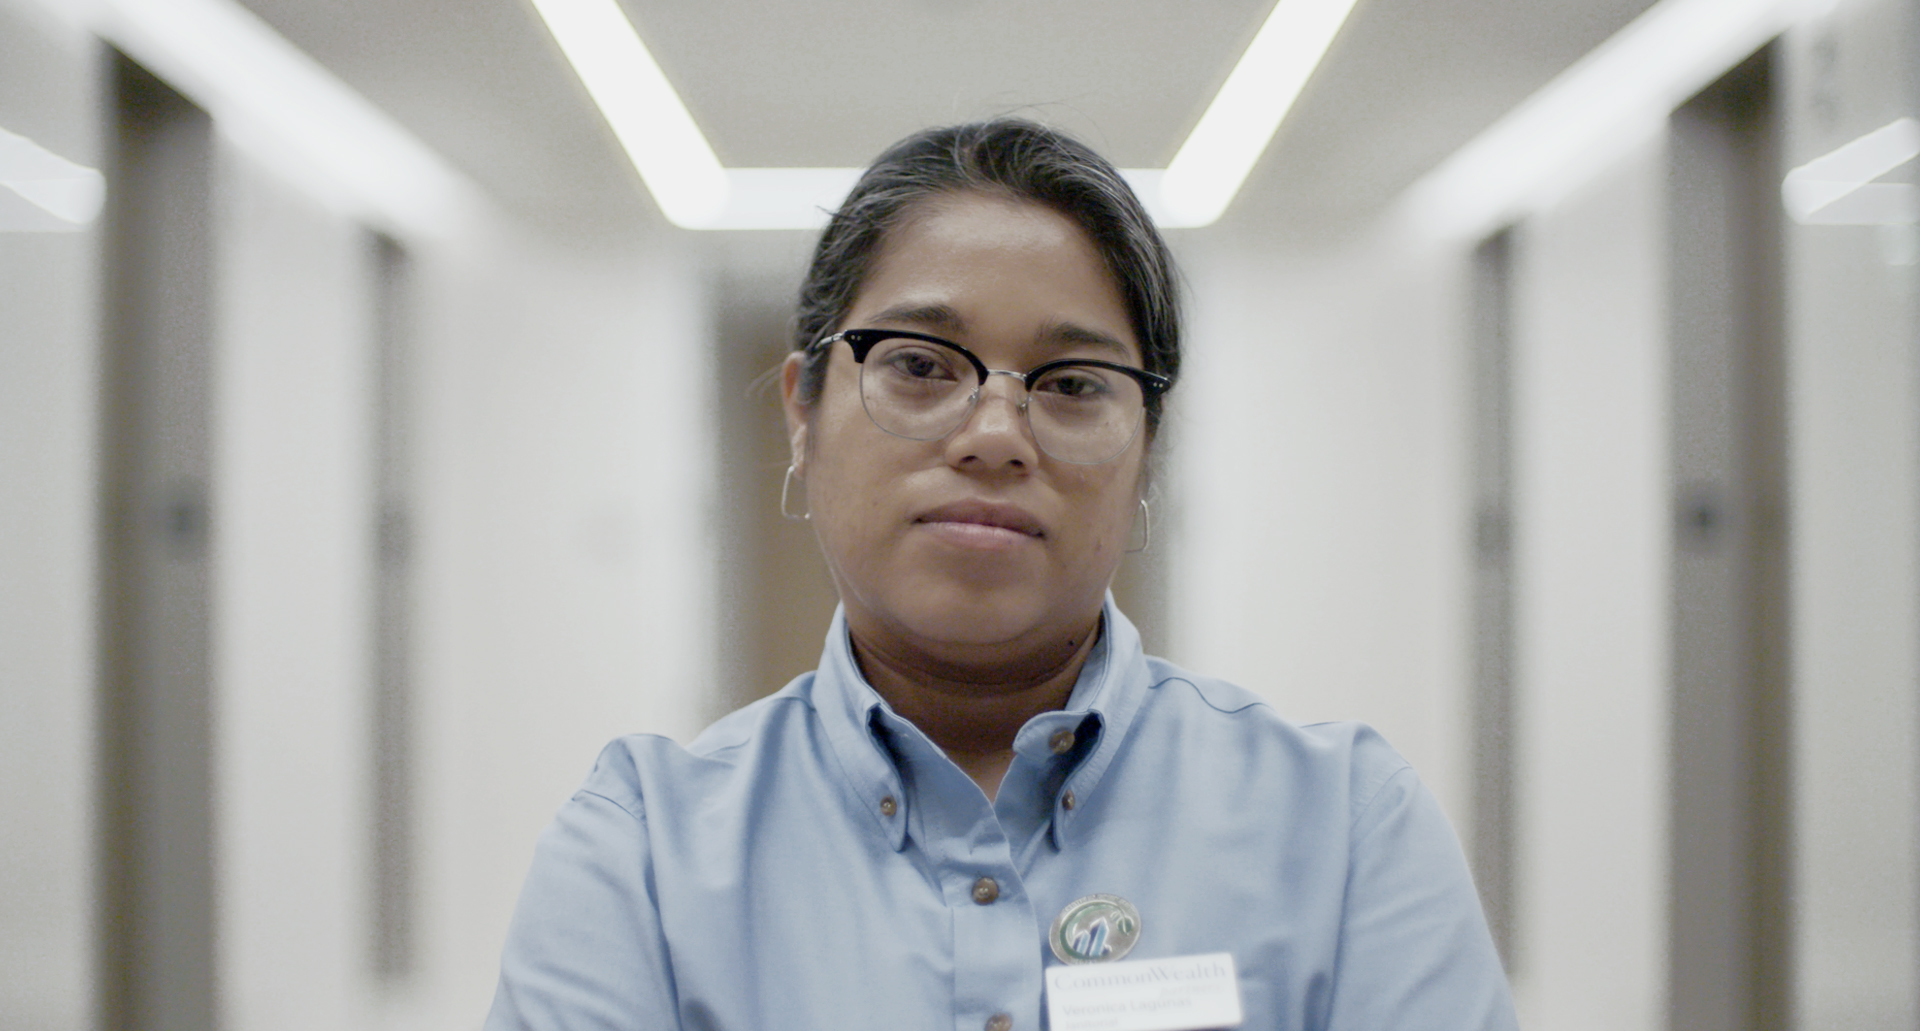 Veronica Lagunas works as a union nighttime janitor at an office building in downtown Los Angeles.